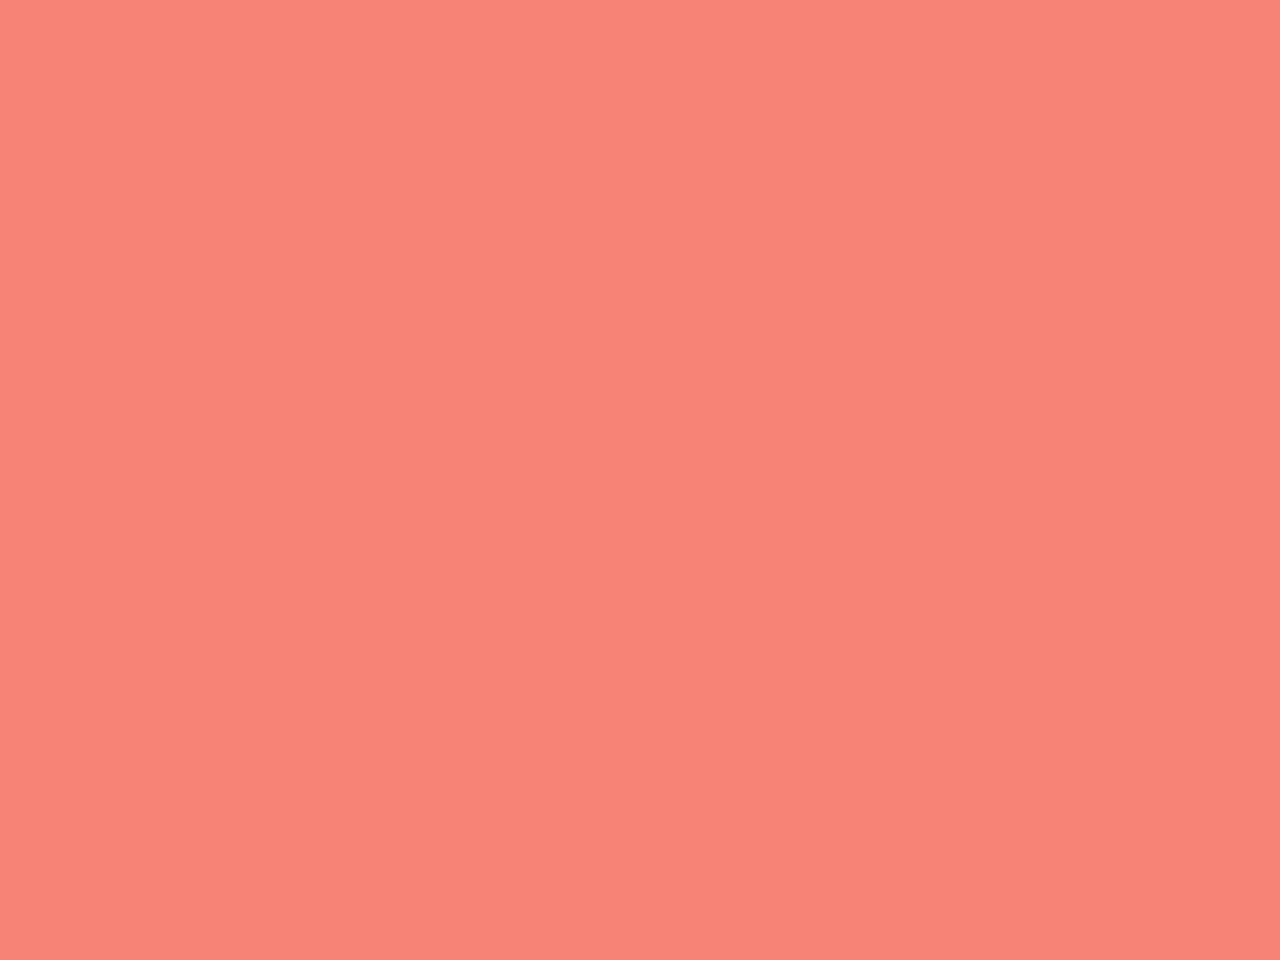 1280x960 Tea Rose Orange Solid Color Background